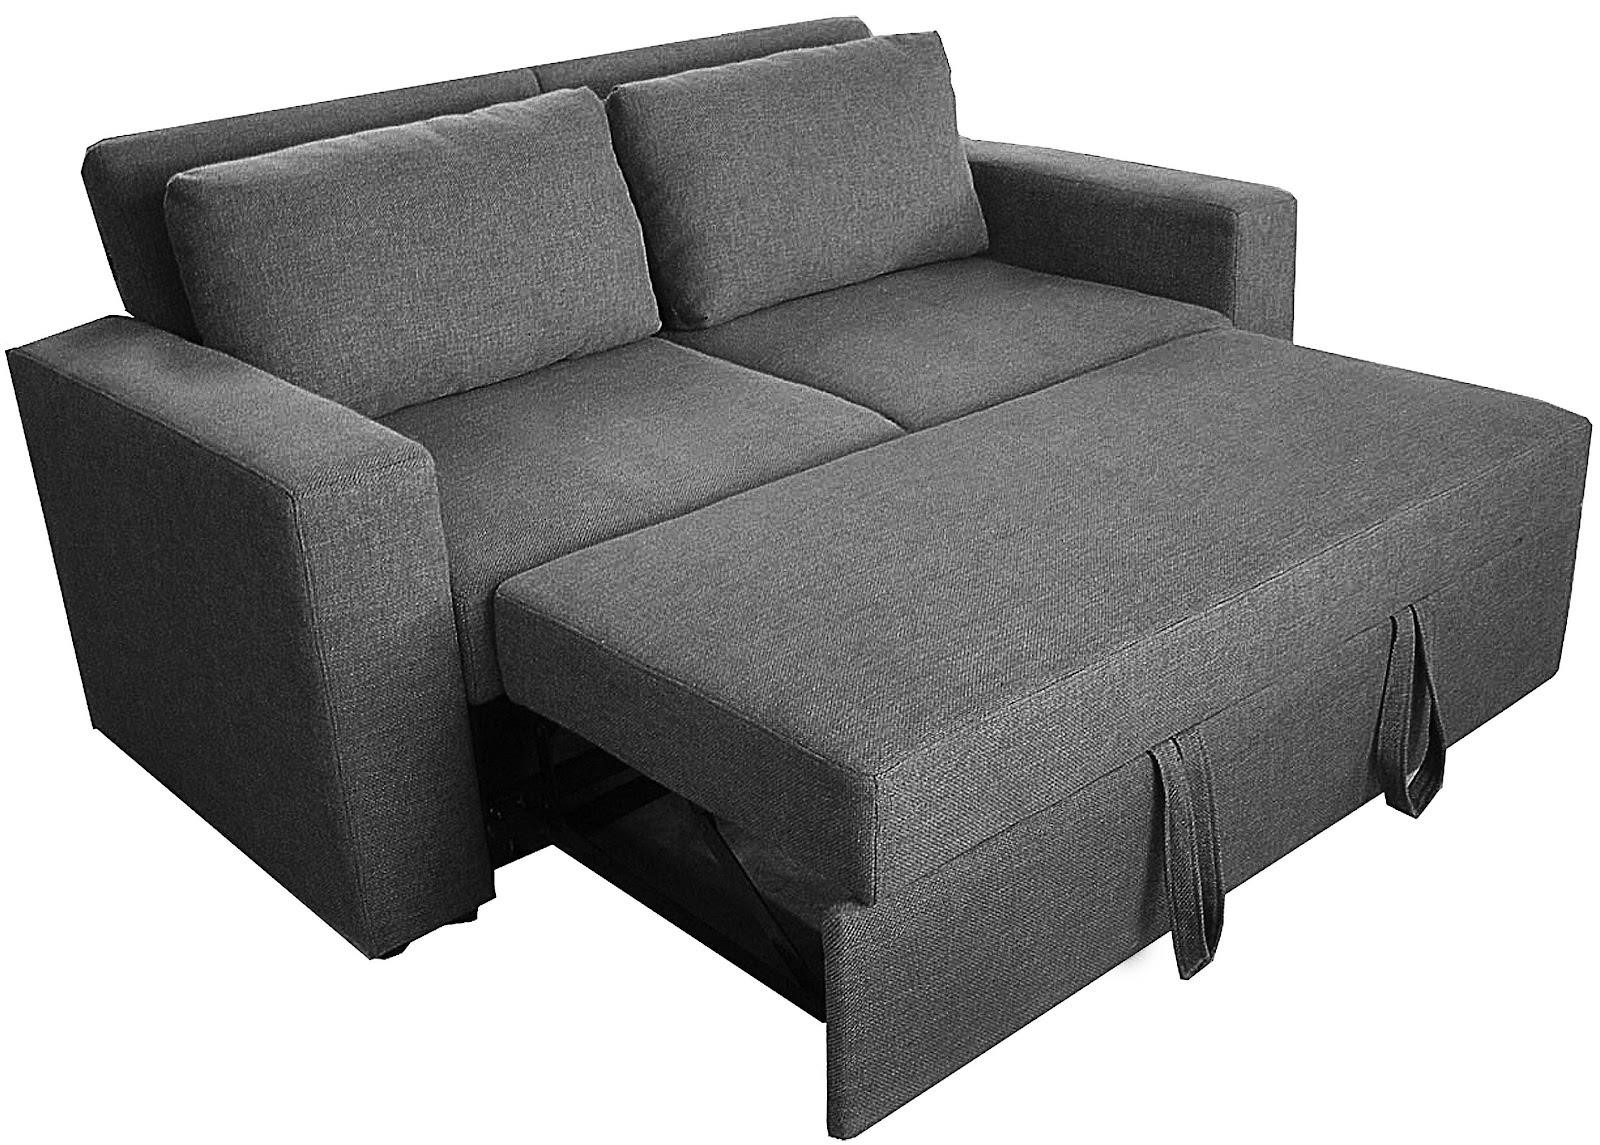 Latest Pull Out Sofa Chairs Pertaining To Sofa : Loveseat With Pull Out Bed Trundle Beds Pull Out Couches (View 3 of 20)